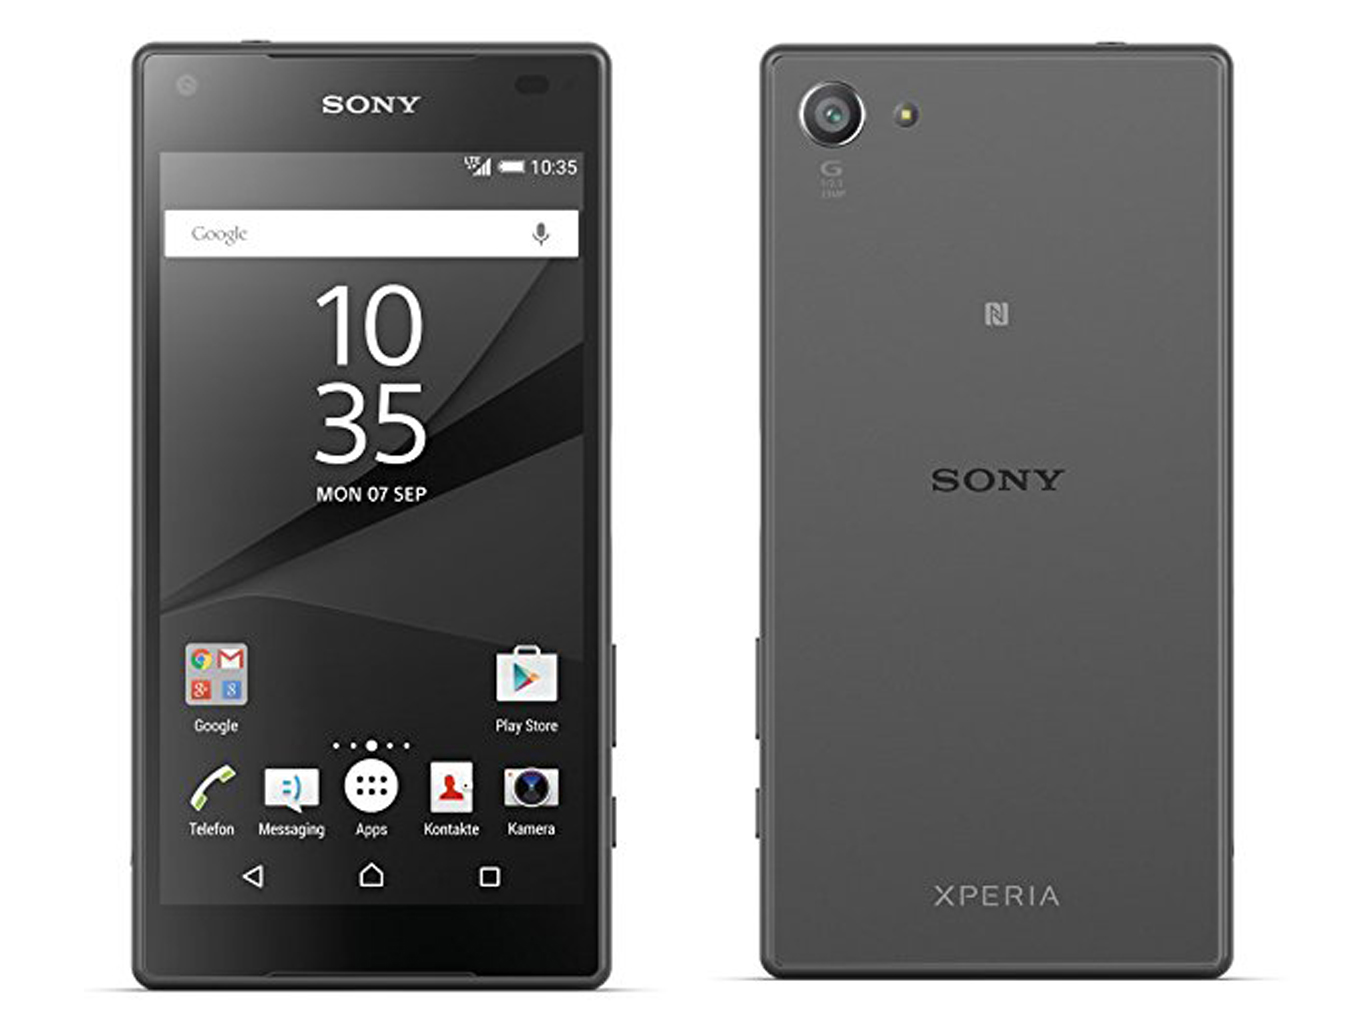 Install Lineage OS 14.1 Android 7.1 Nougat Custom ROM On Sony Xperia Z5 Compact